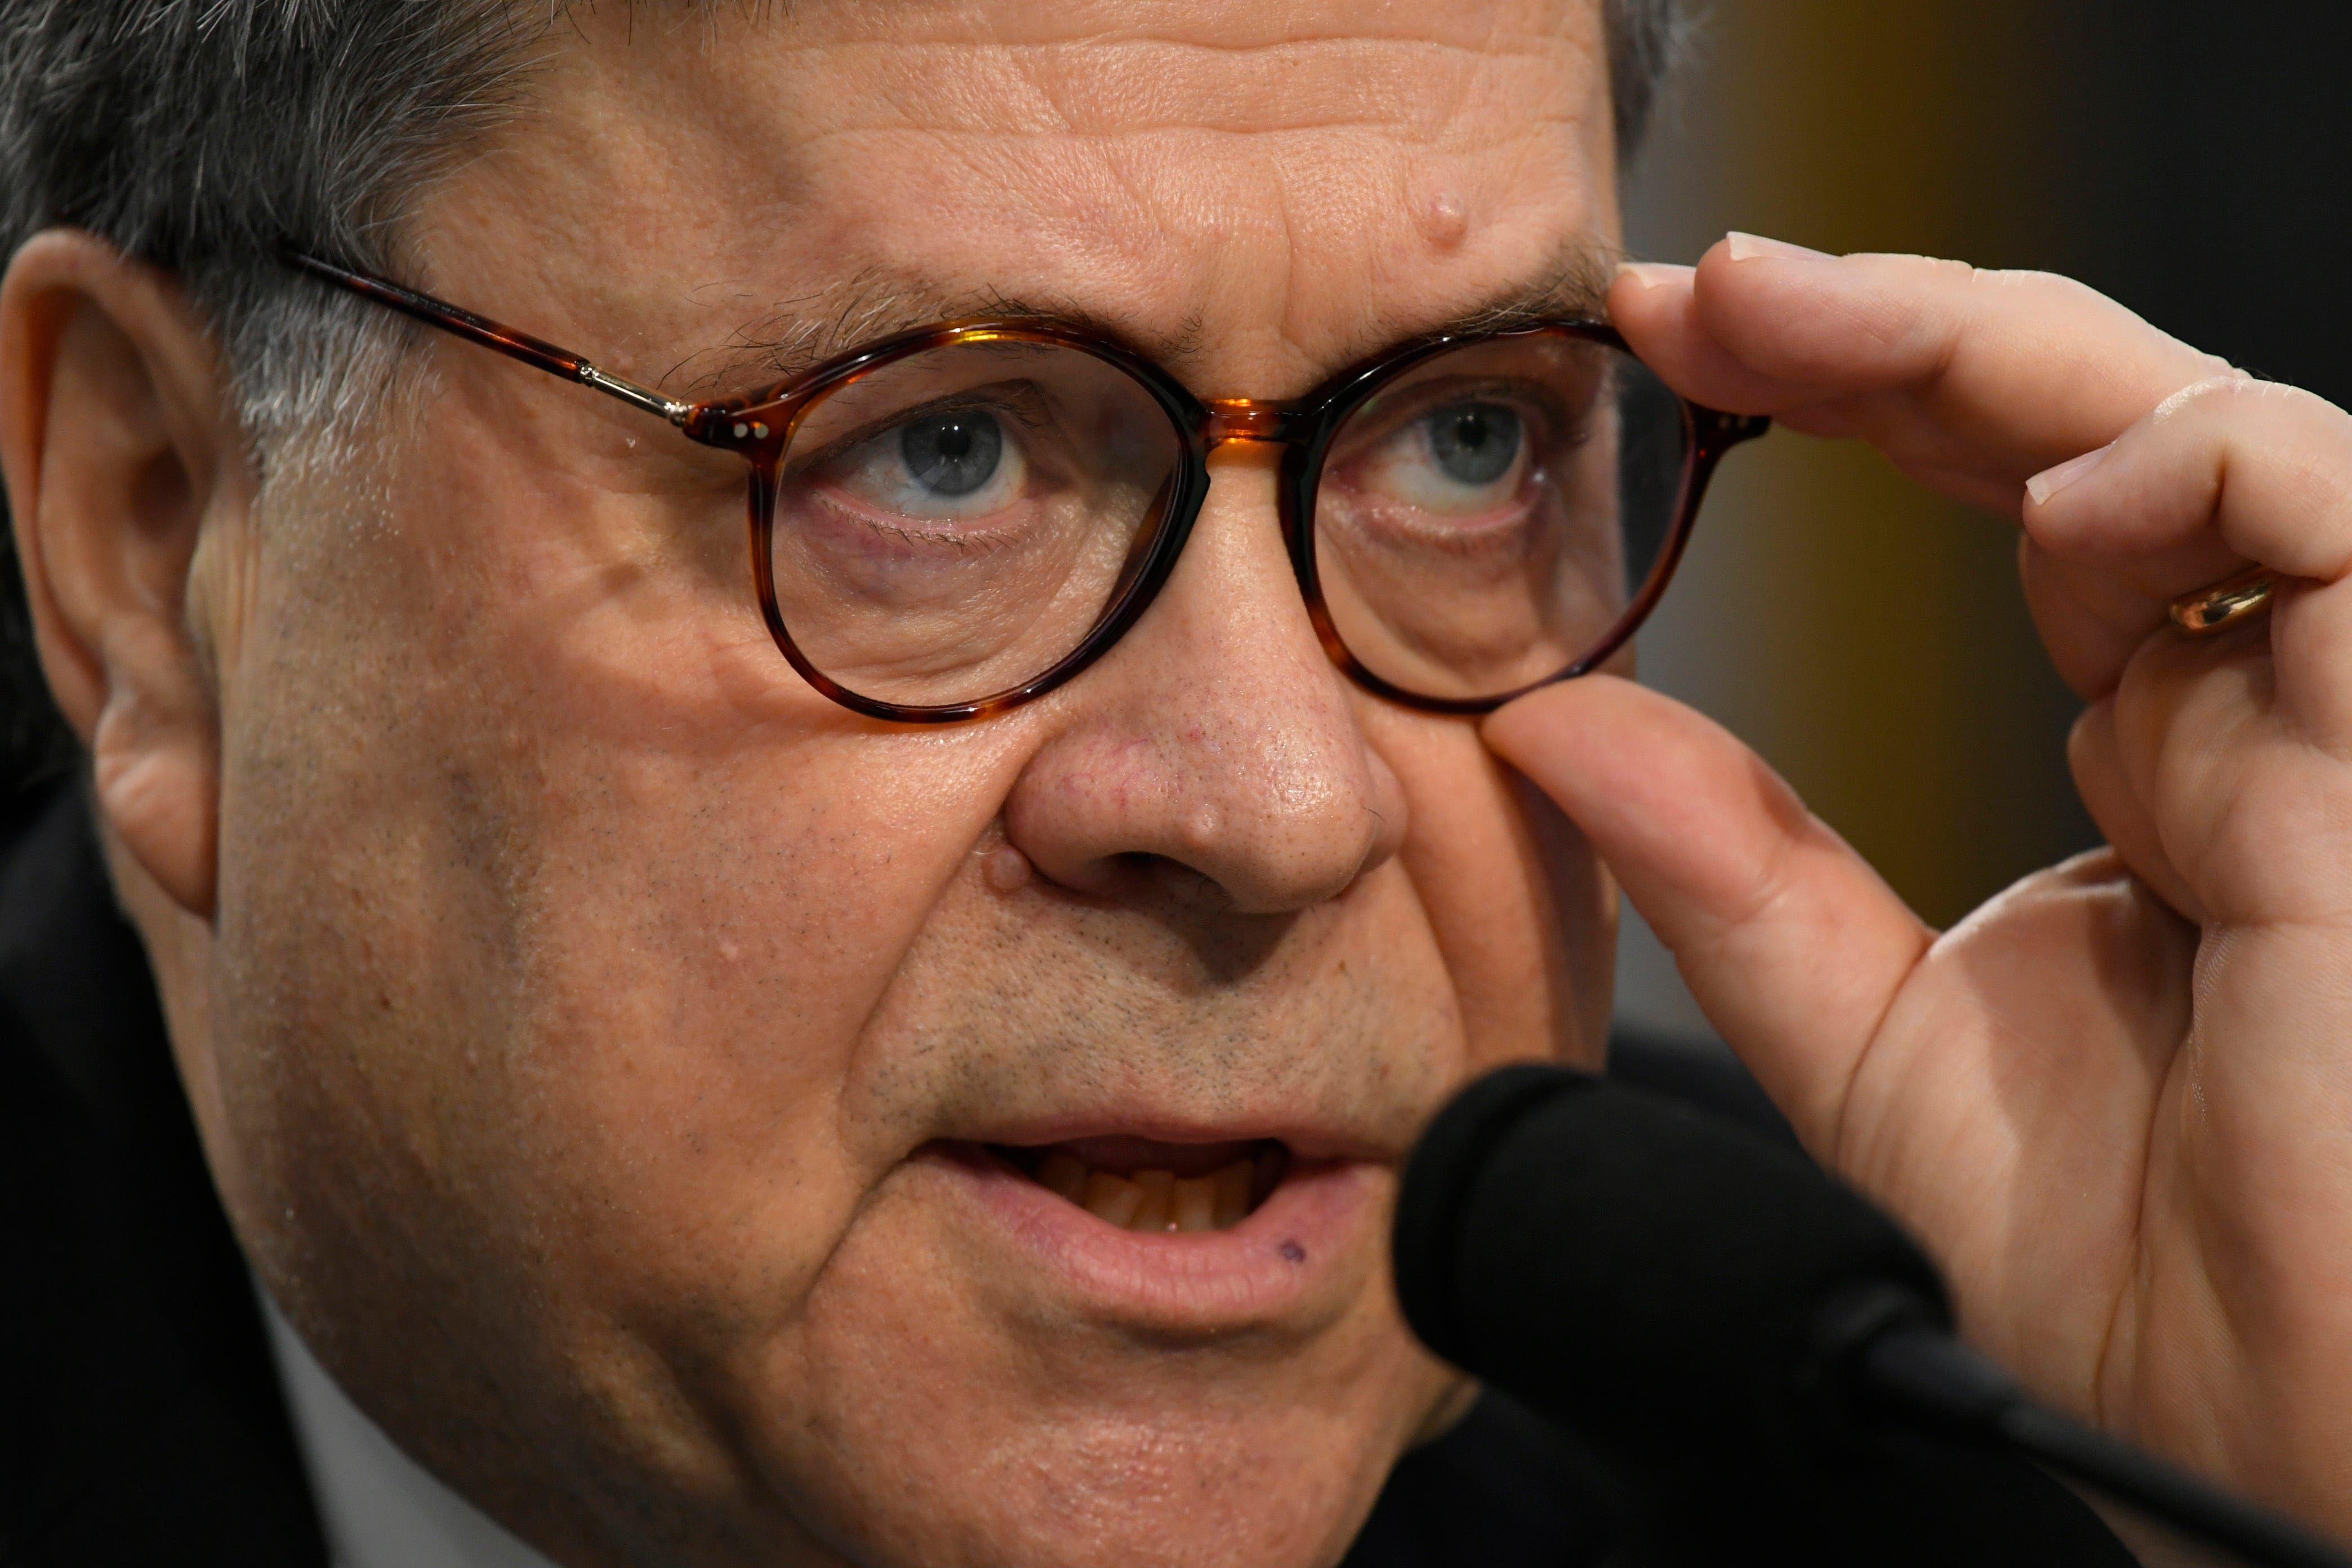 Attorney General William Barr testifies before the House Appropriation subcommittee on Commerce, Justice, Science, and Related Agencies on Capitol Hill on April 9, 2019.